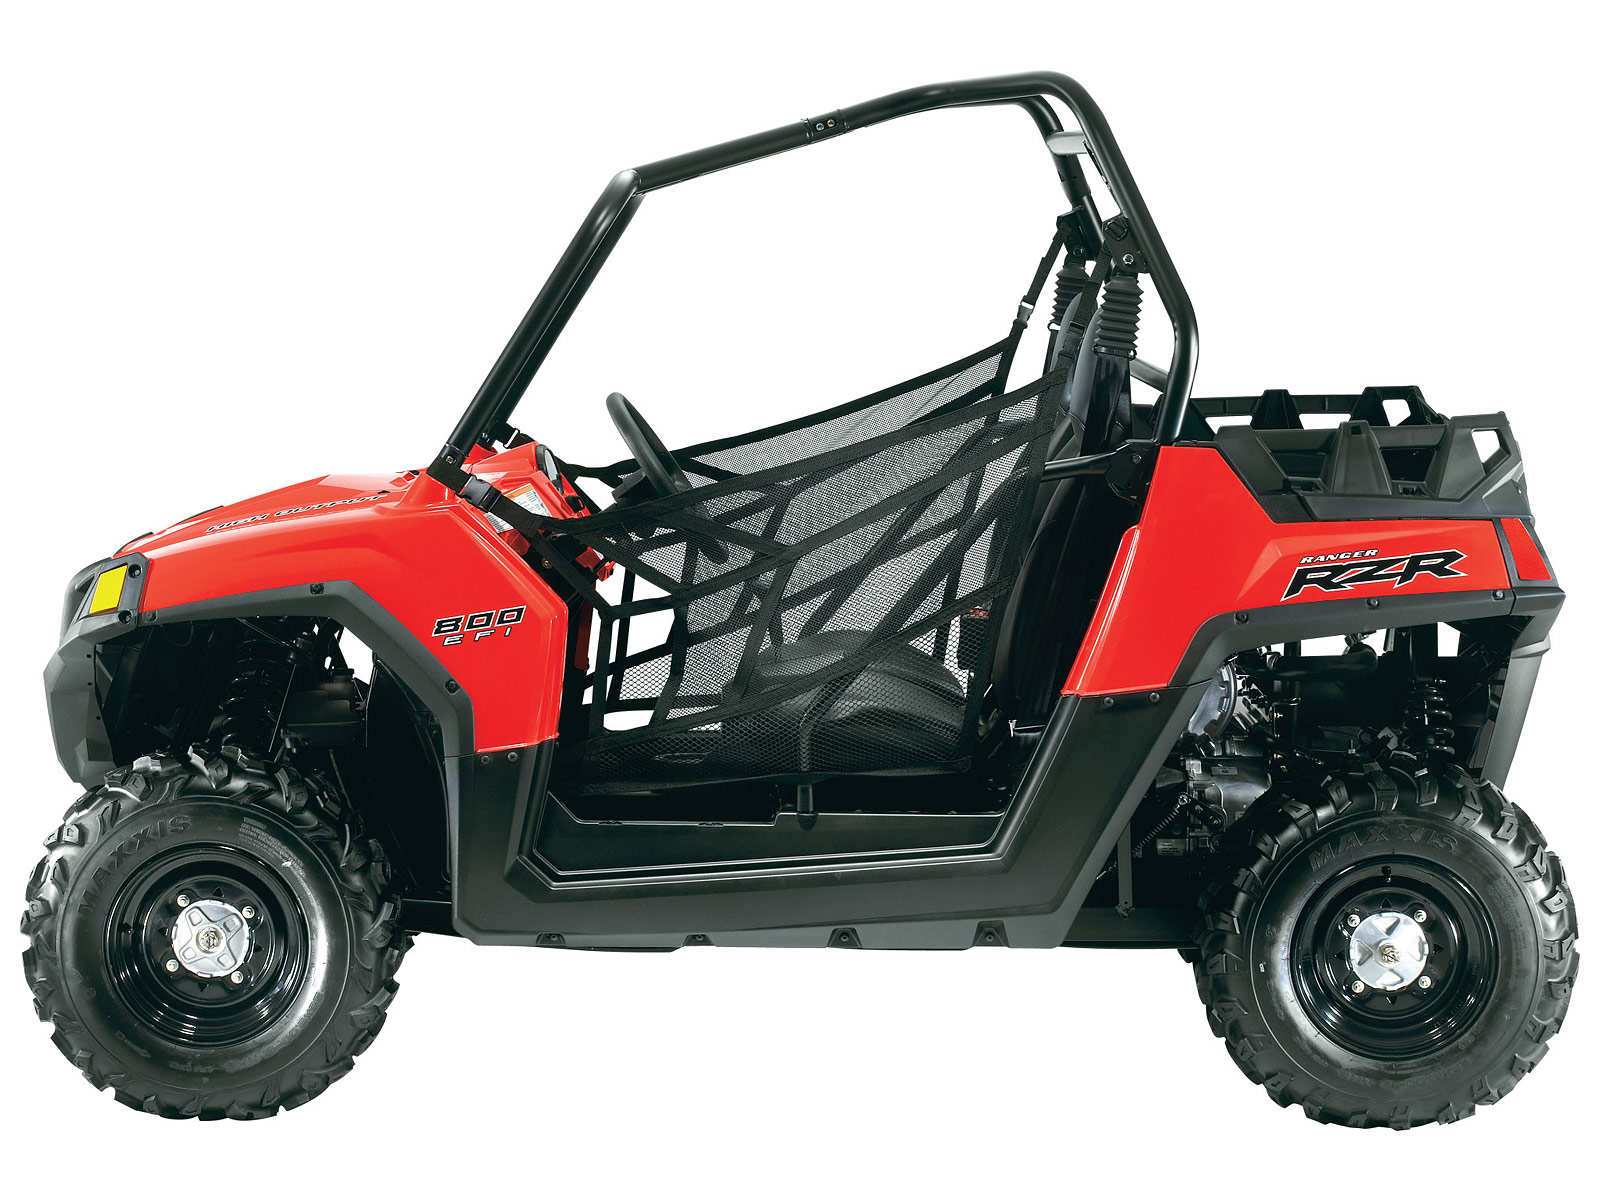 ... 2012 Polaris Ranger RZR 800 ATV pictures 2